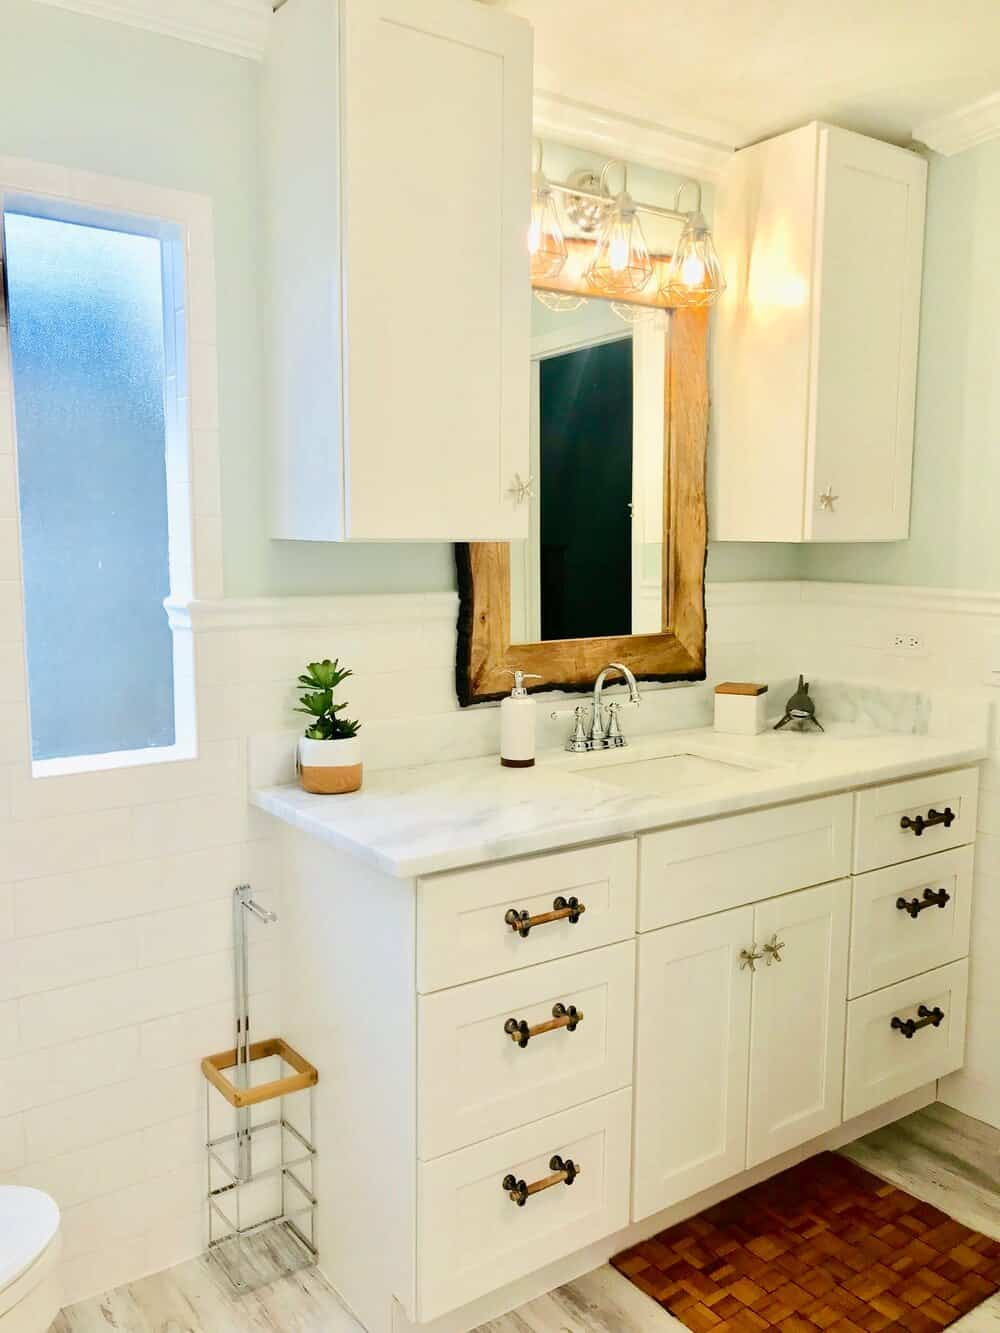 Bathroom After Remodel In 1988 Manufactured Home